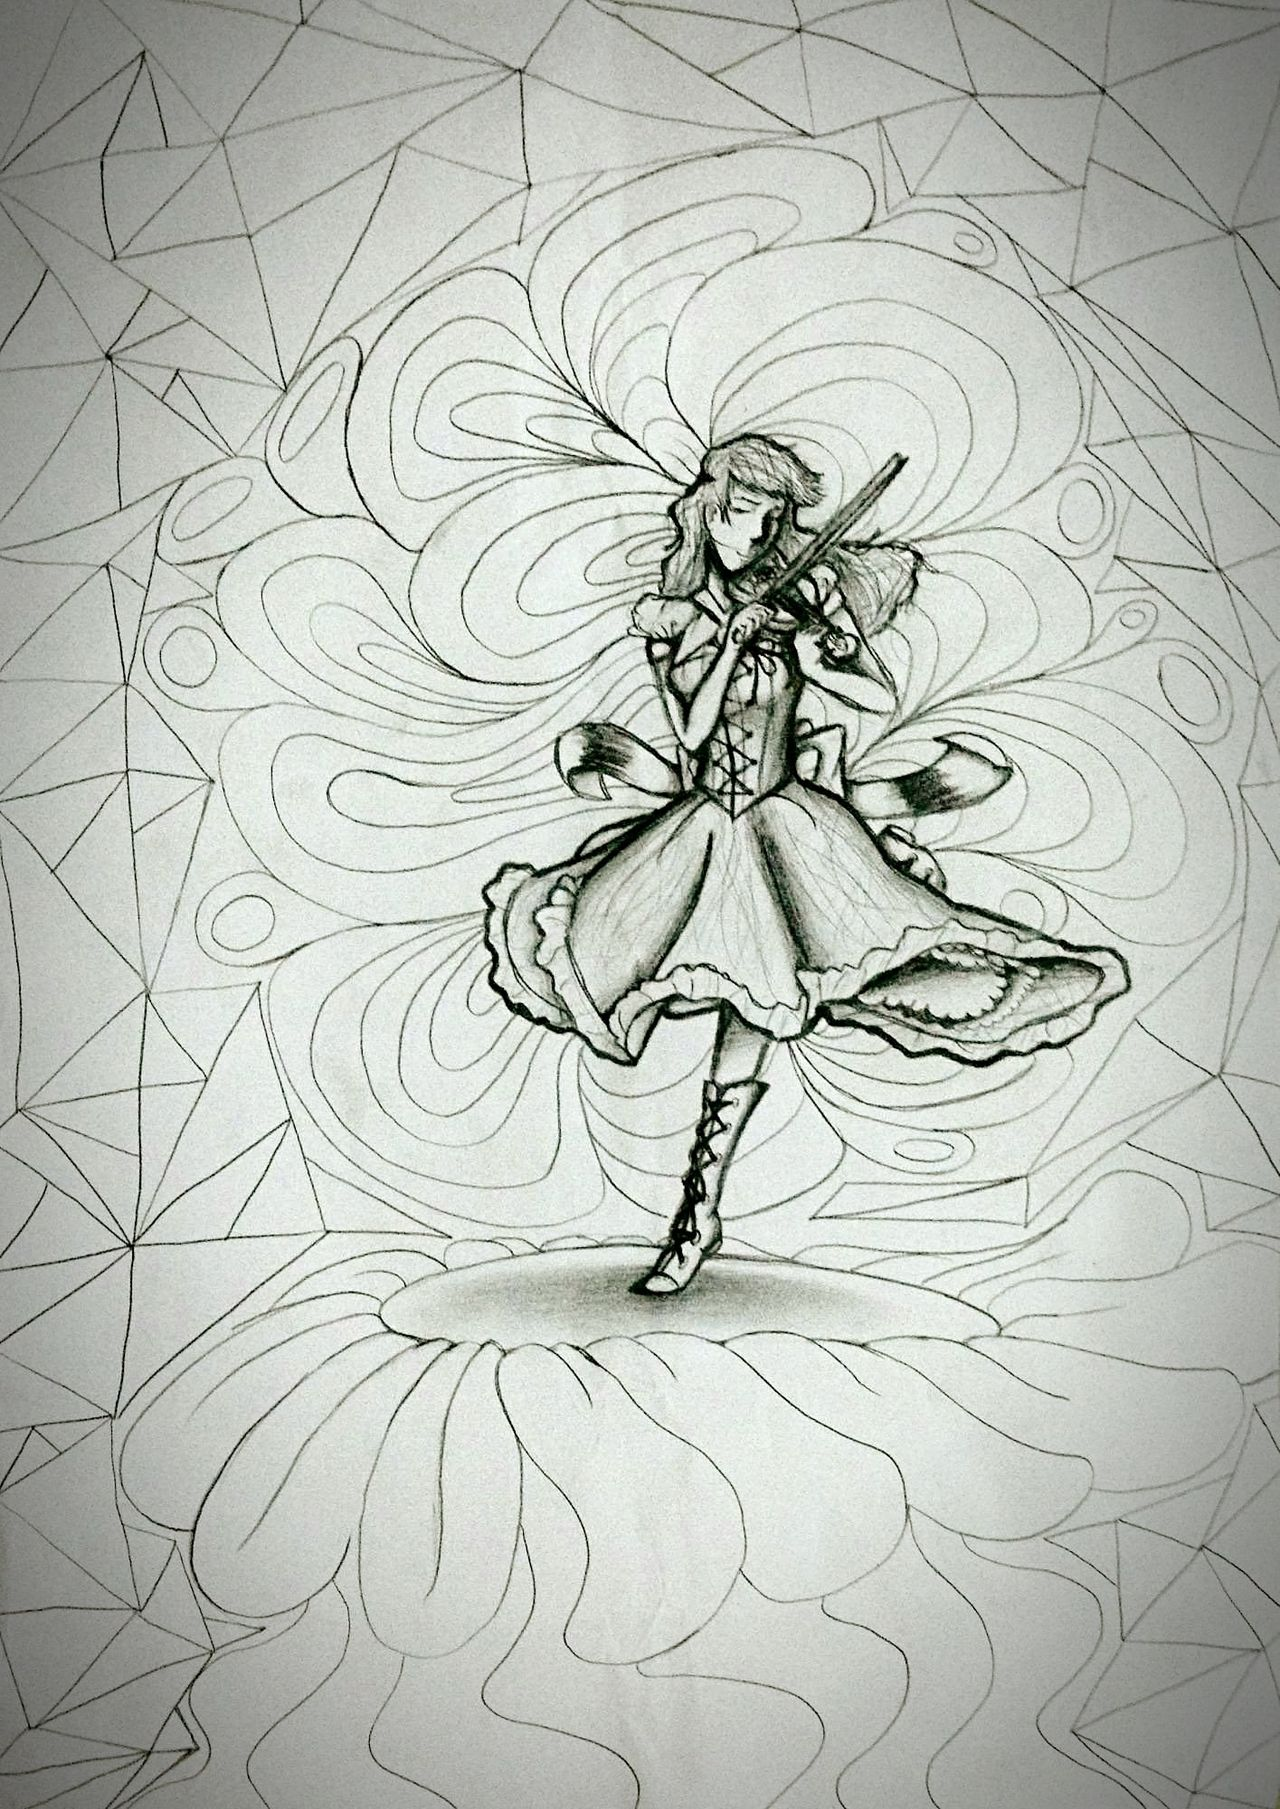 Music can change the sounds of the world around you. Violin Electric Daisy Violin And props to LindseyStirling for her music and that it inspires me to draw this. Make of it what you love or like. And remember the hills are always alive with the sound of music................................................. Thesoundofmusic